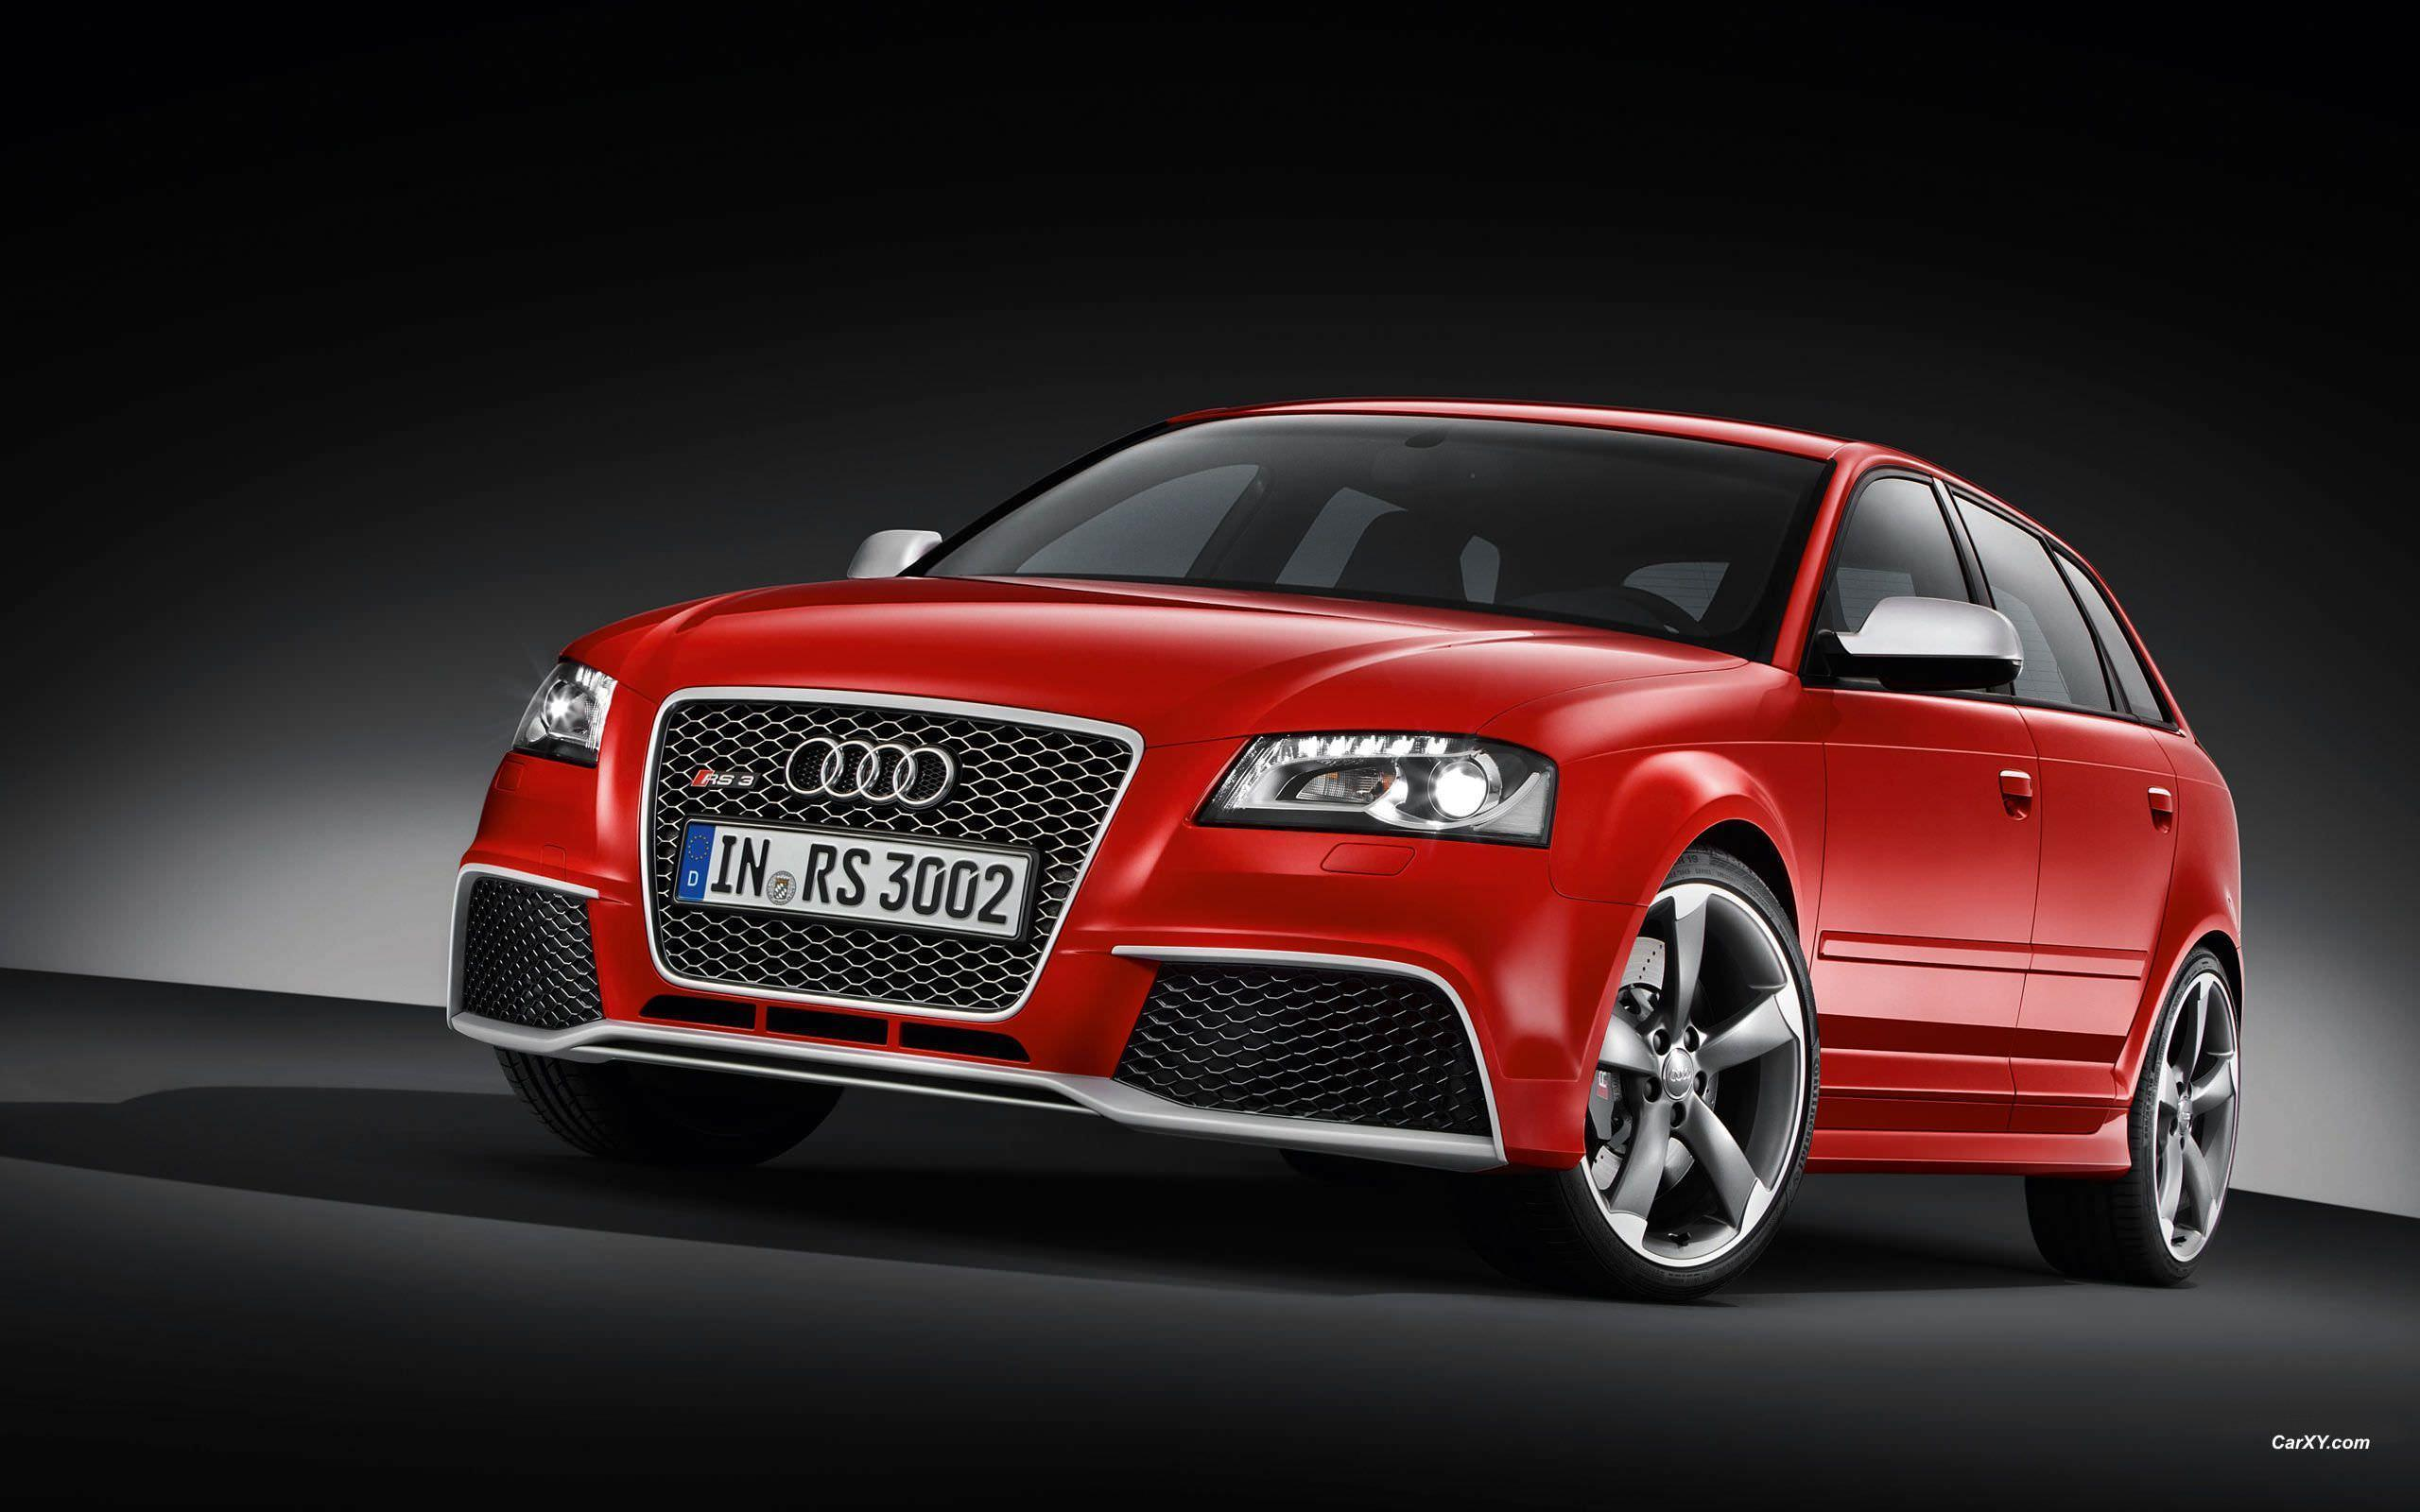 Audi A3 Wallpapers Audi HD Wallpapers Car Metallic - illinois-liver